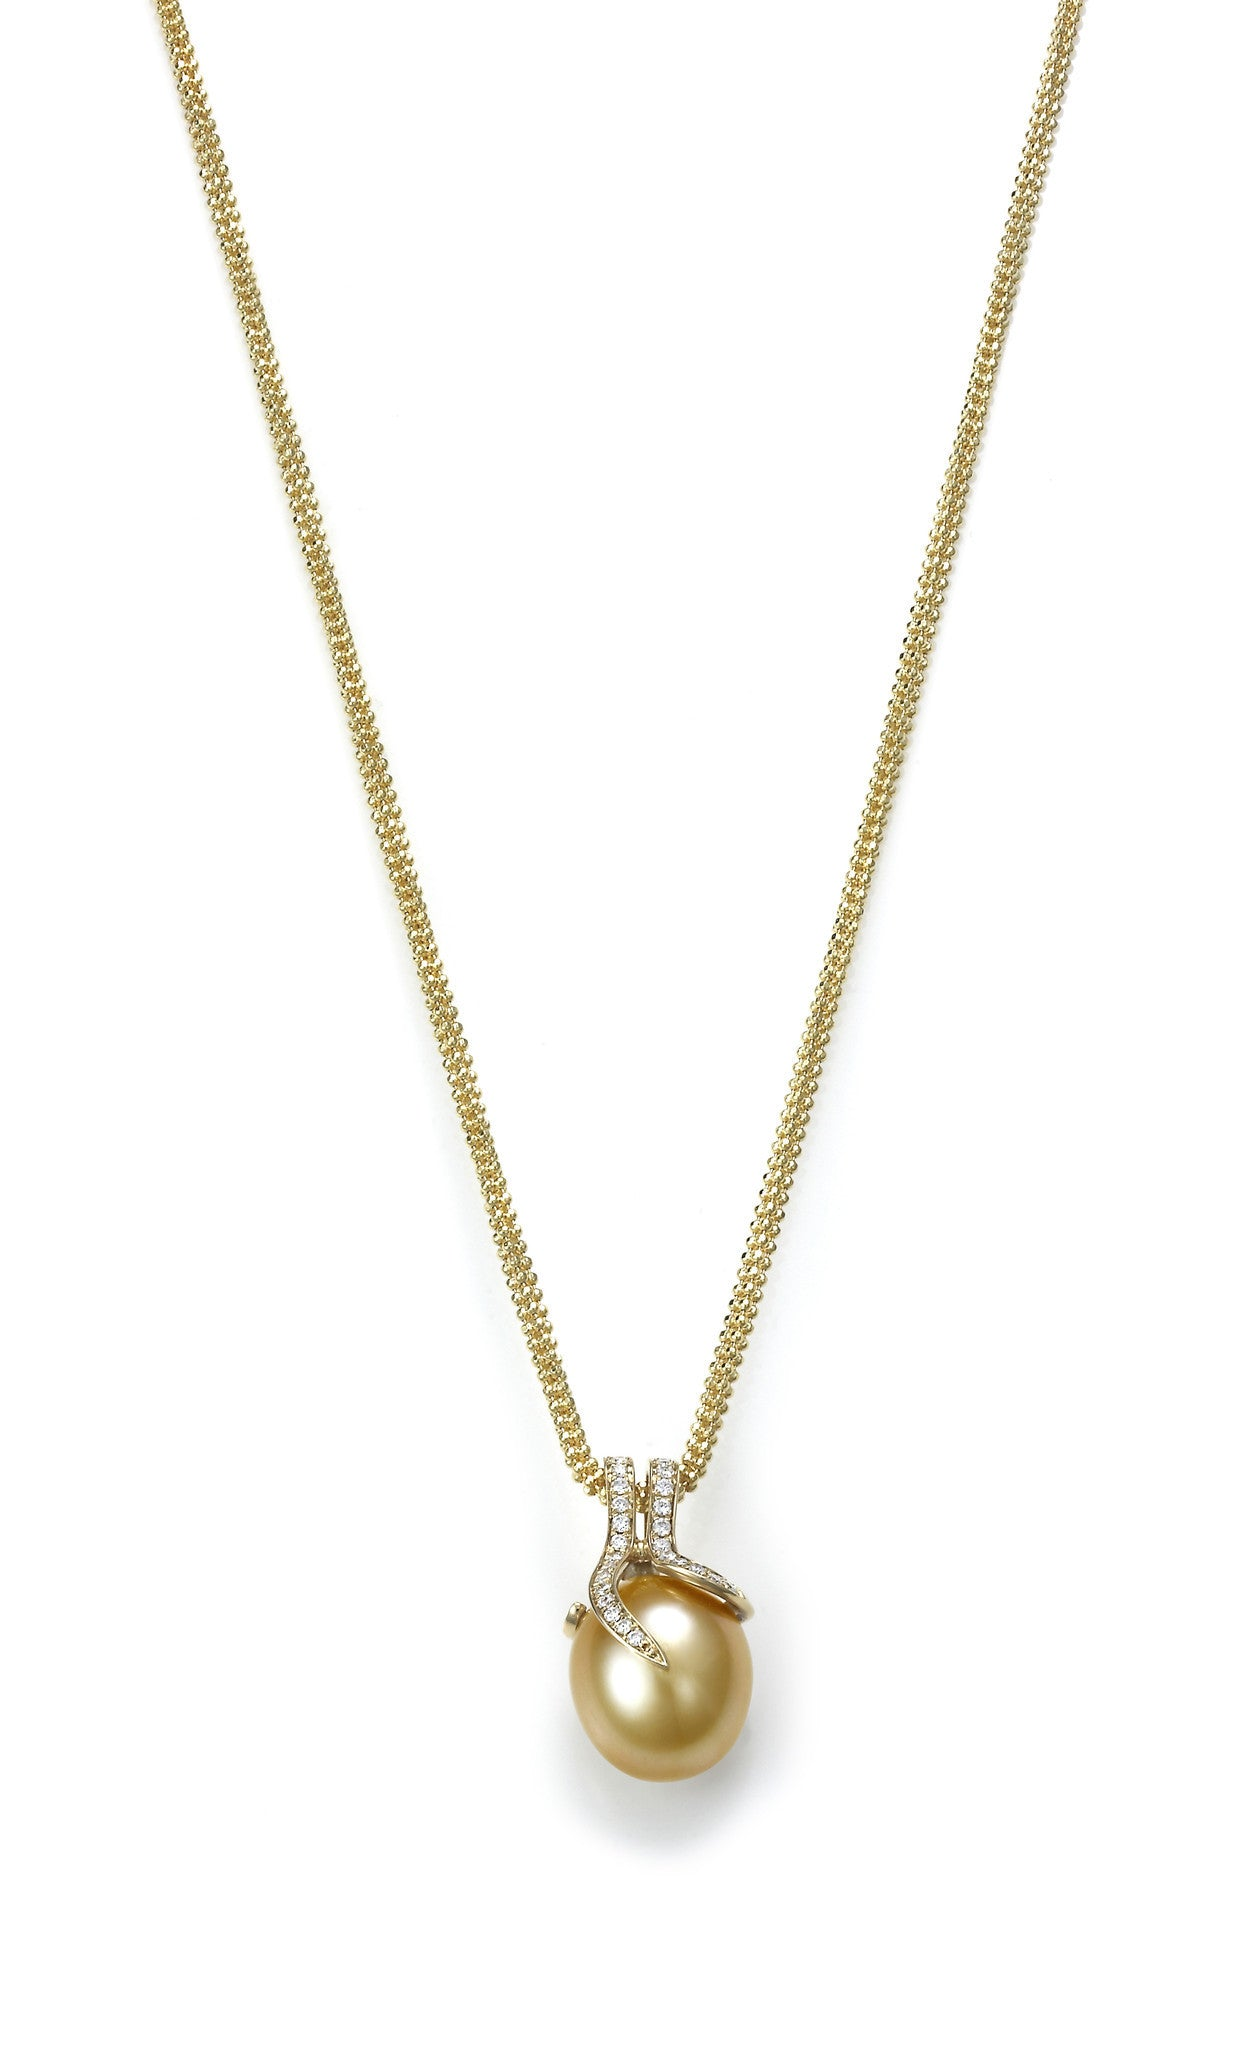 Oscar Collection 11-13mm Golden South Sea Pearl Pendant